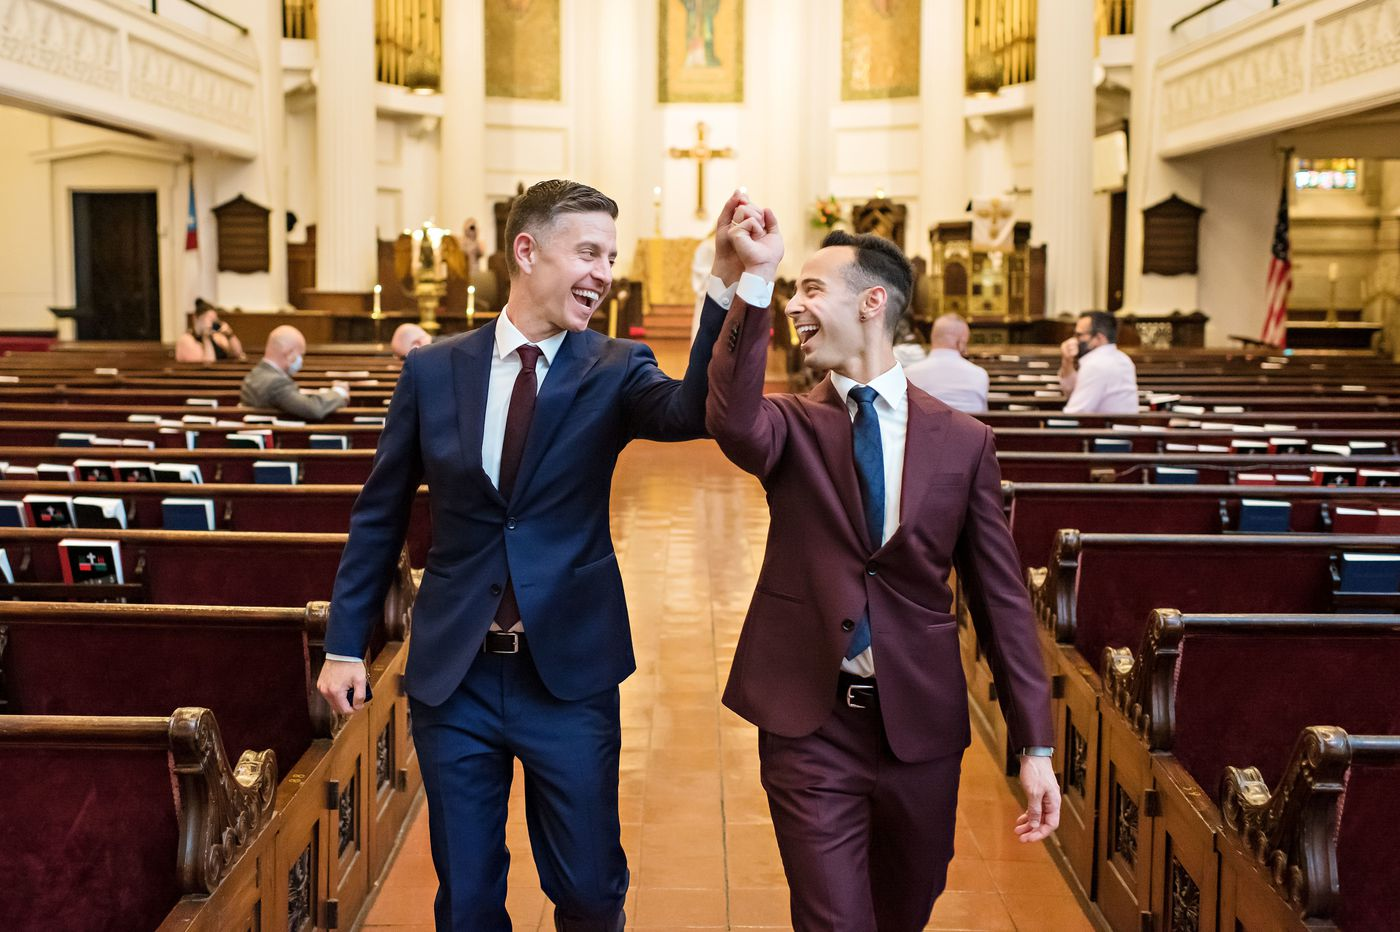 Adam Ouanes & Brad Luna: Inspired by their parents, they took a chance on love